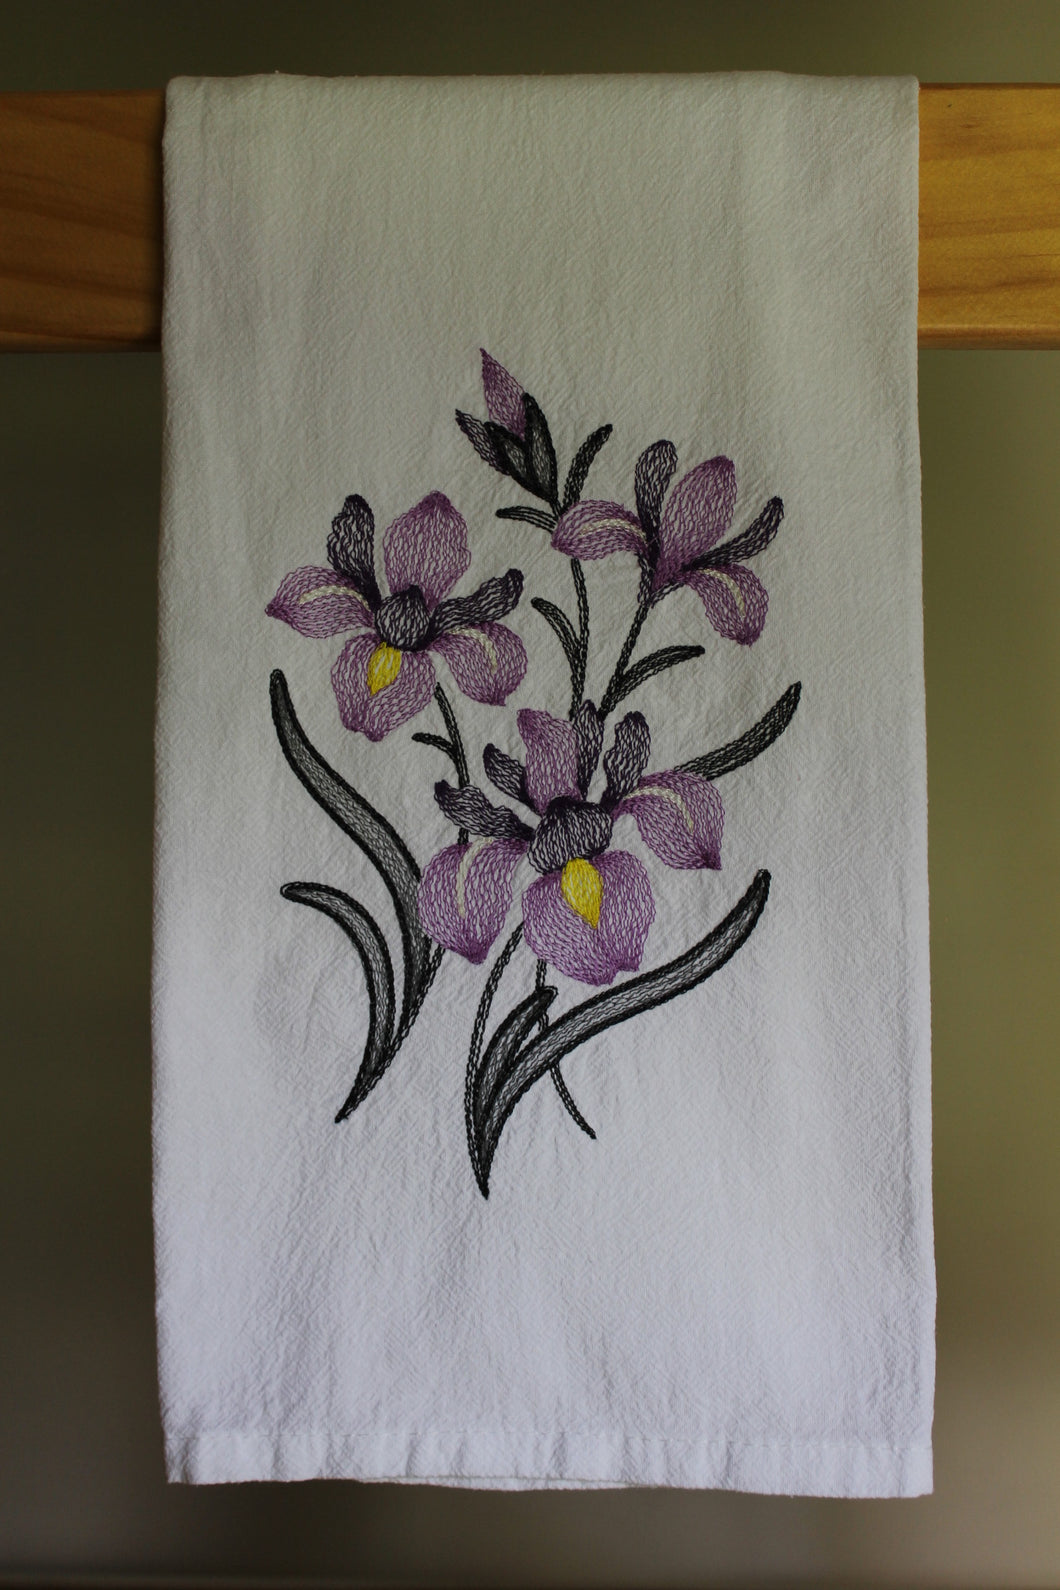 dark and light purple irises with yellow centres stitched in a sketch format with charchoal leaves and stems